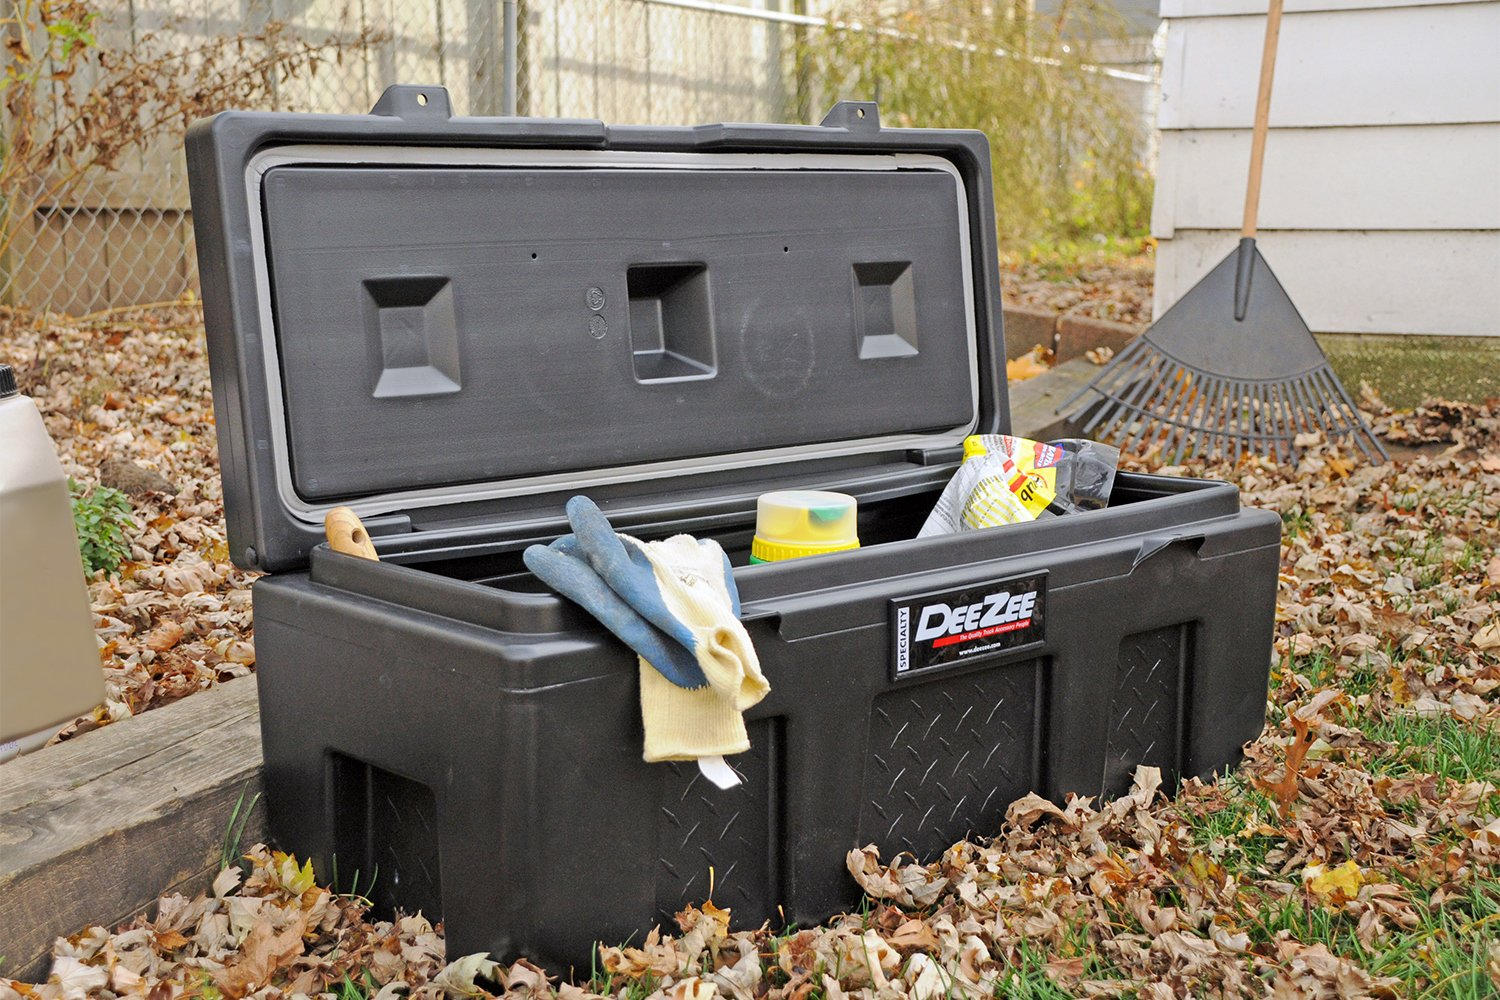 Truck Chest Tool Box >> Dee Zee Poly Utility Chest Tool Box - Truck Storage - FREE SHIPPING